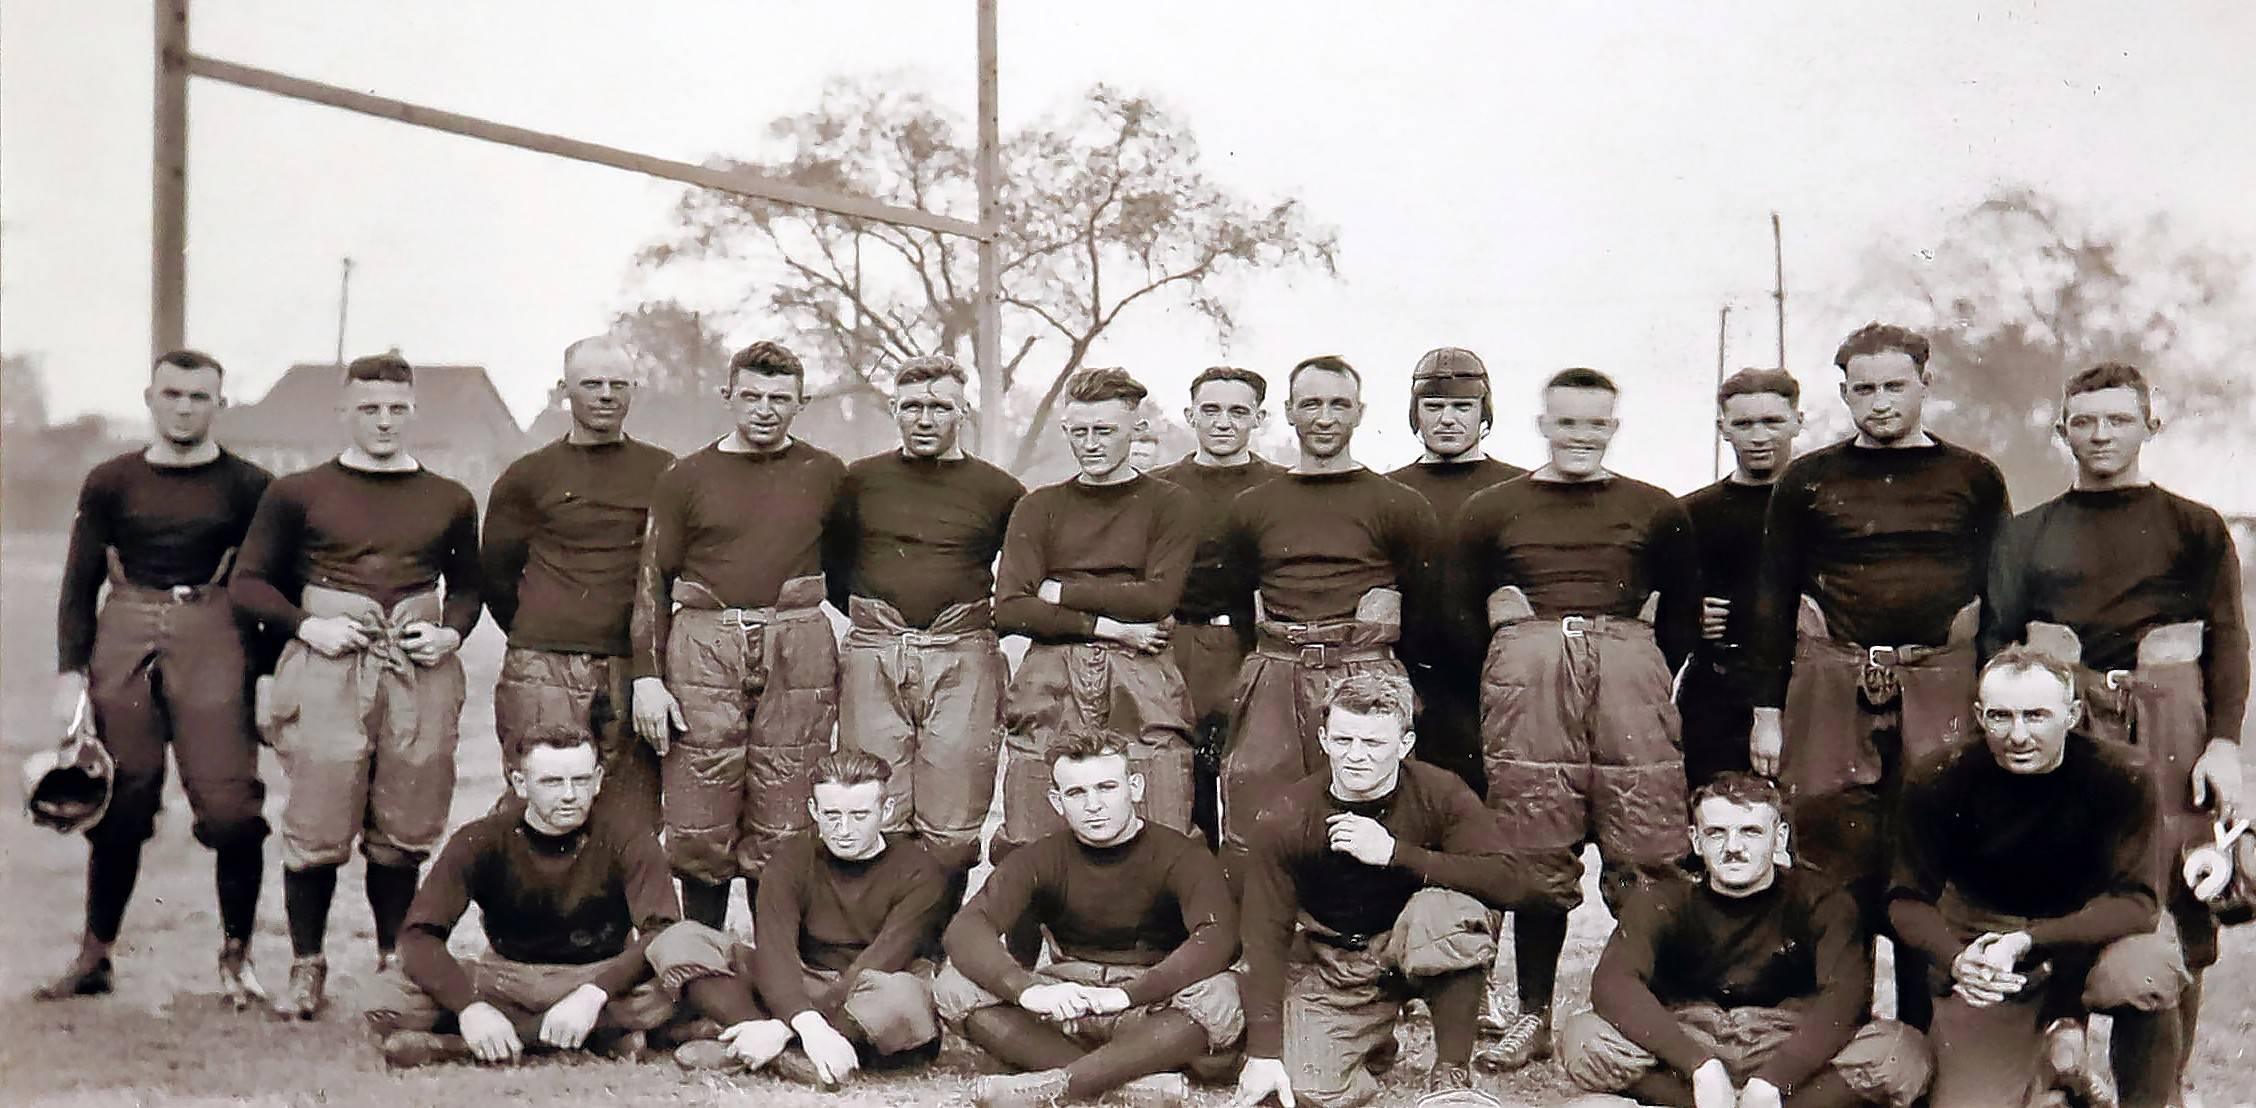 Illinois 200: How the Decatur Staleys became the Chicago Bears